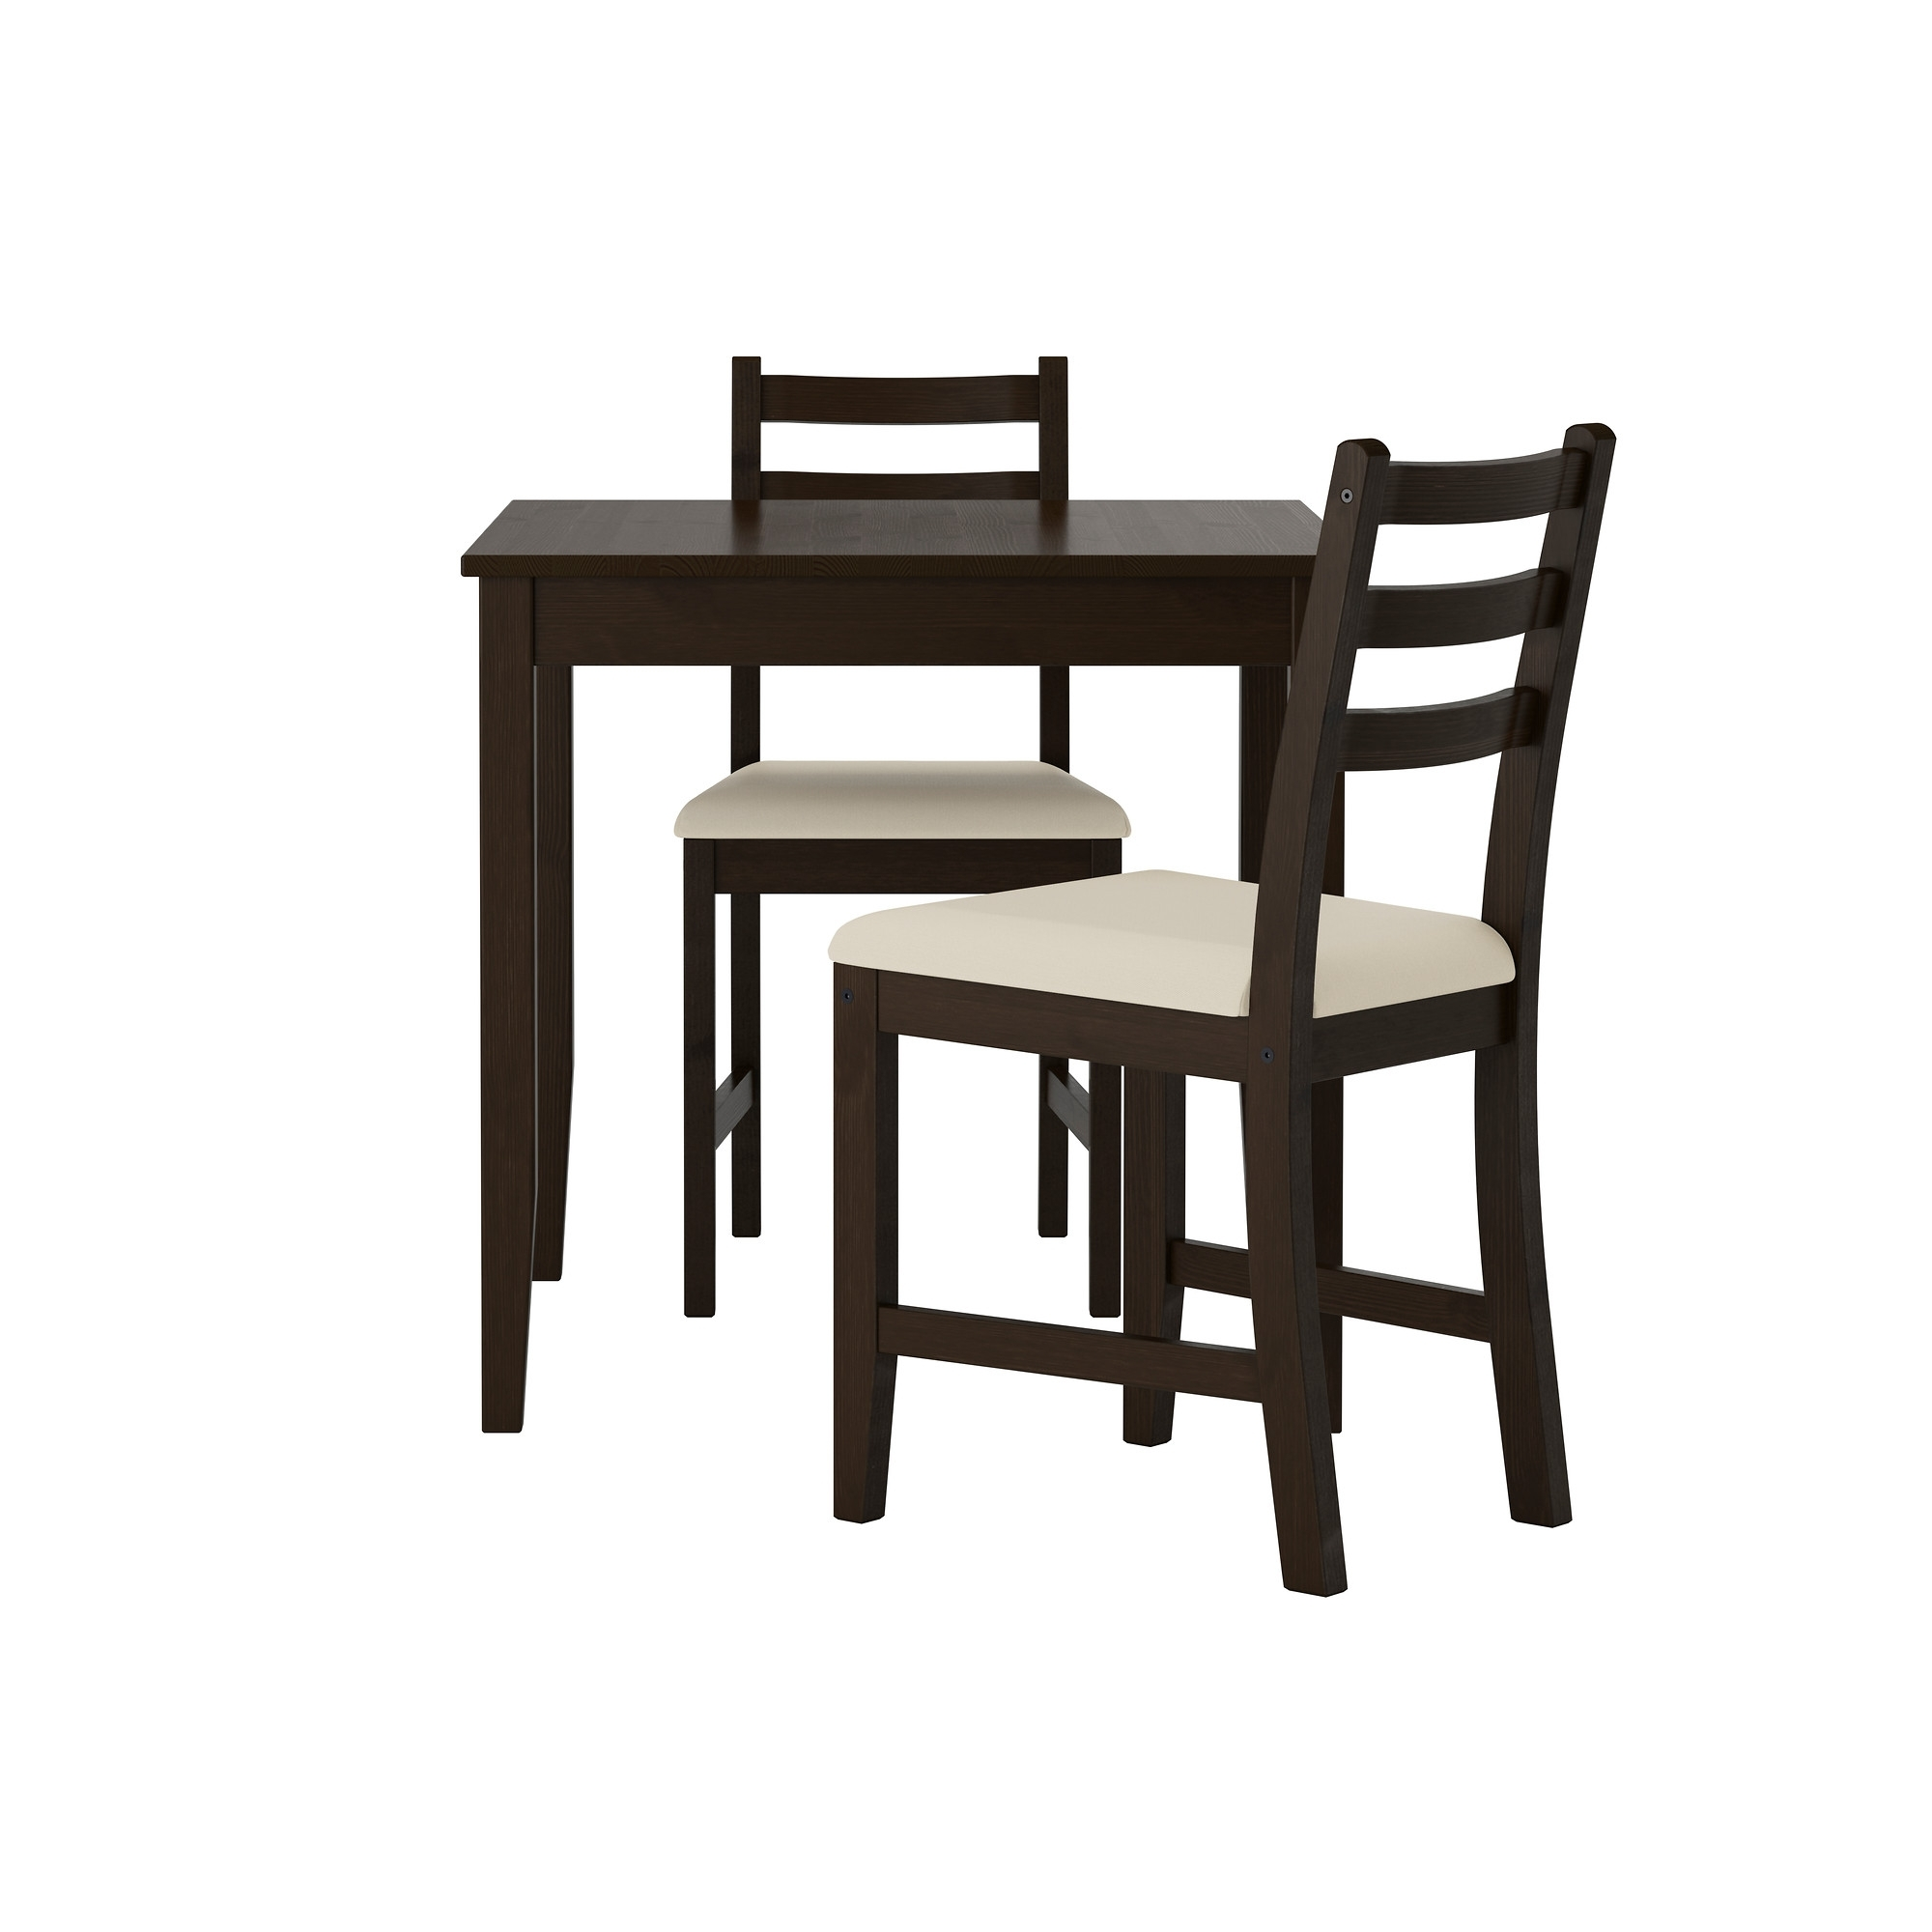 Fashionable Two Seater Dining Tables Throughout Small Dining Table Sets 2 Seater Dining Table Chairs, Ikea Table (View 8 of 25)